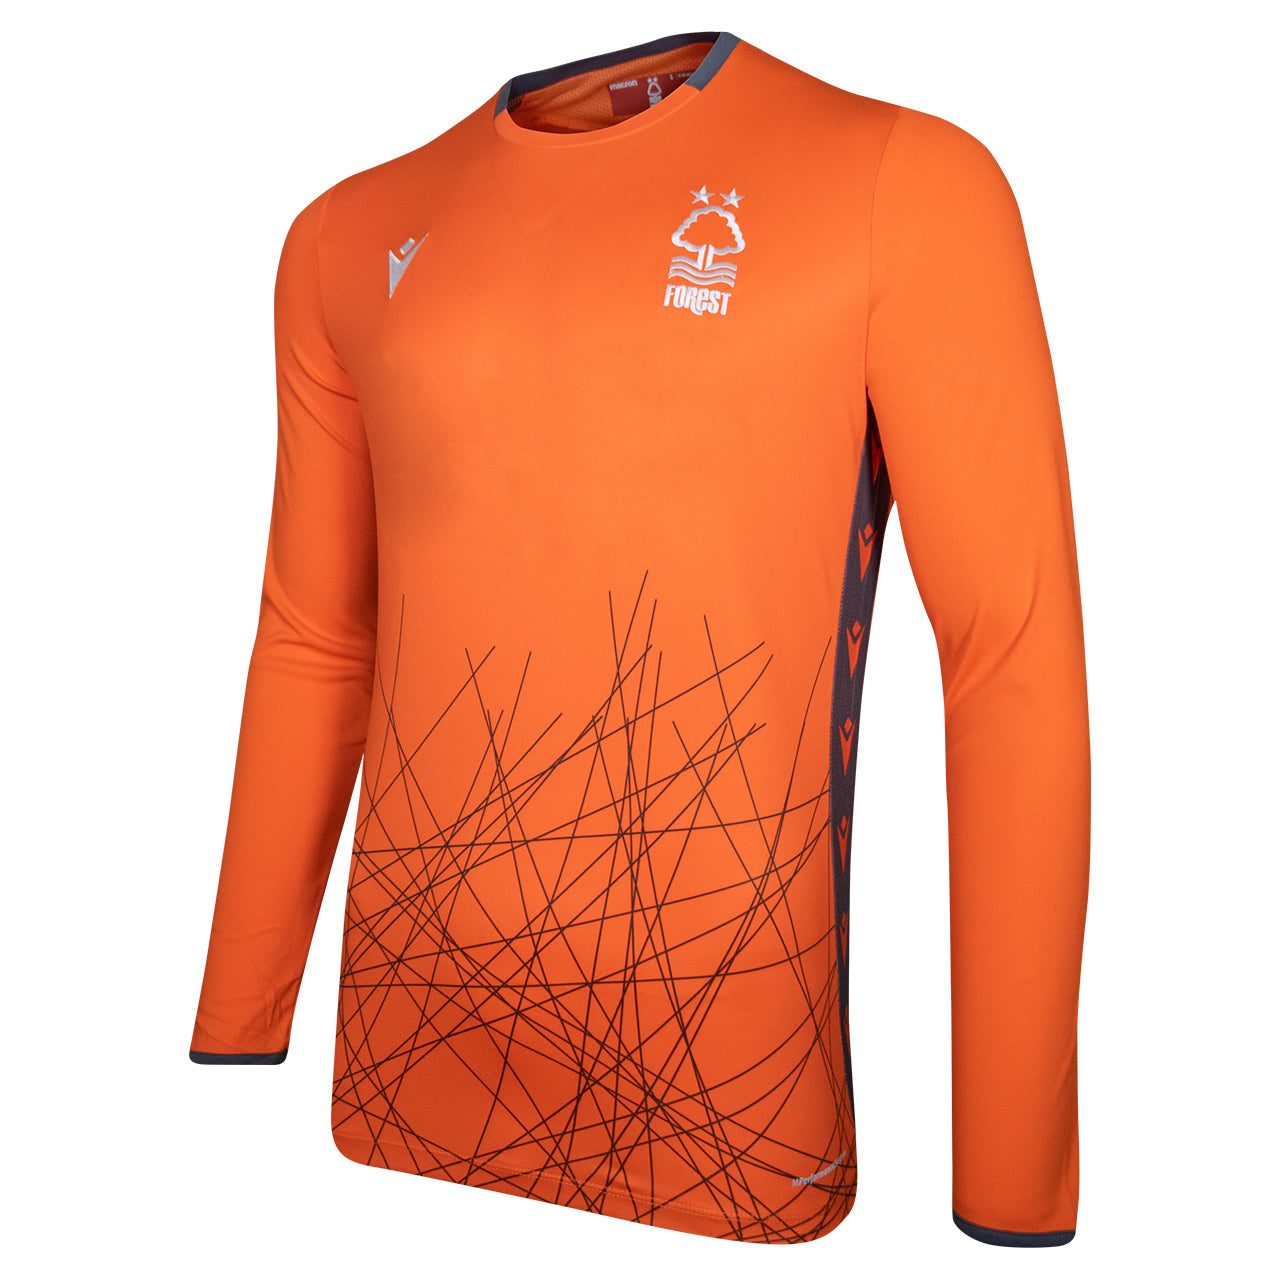 NFFC Junior Orange Goalkeeper Shirt 2020/21